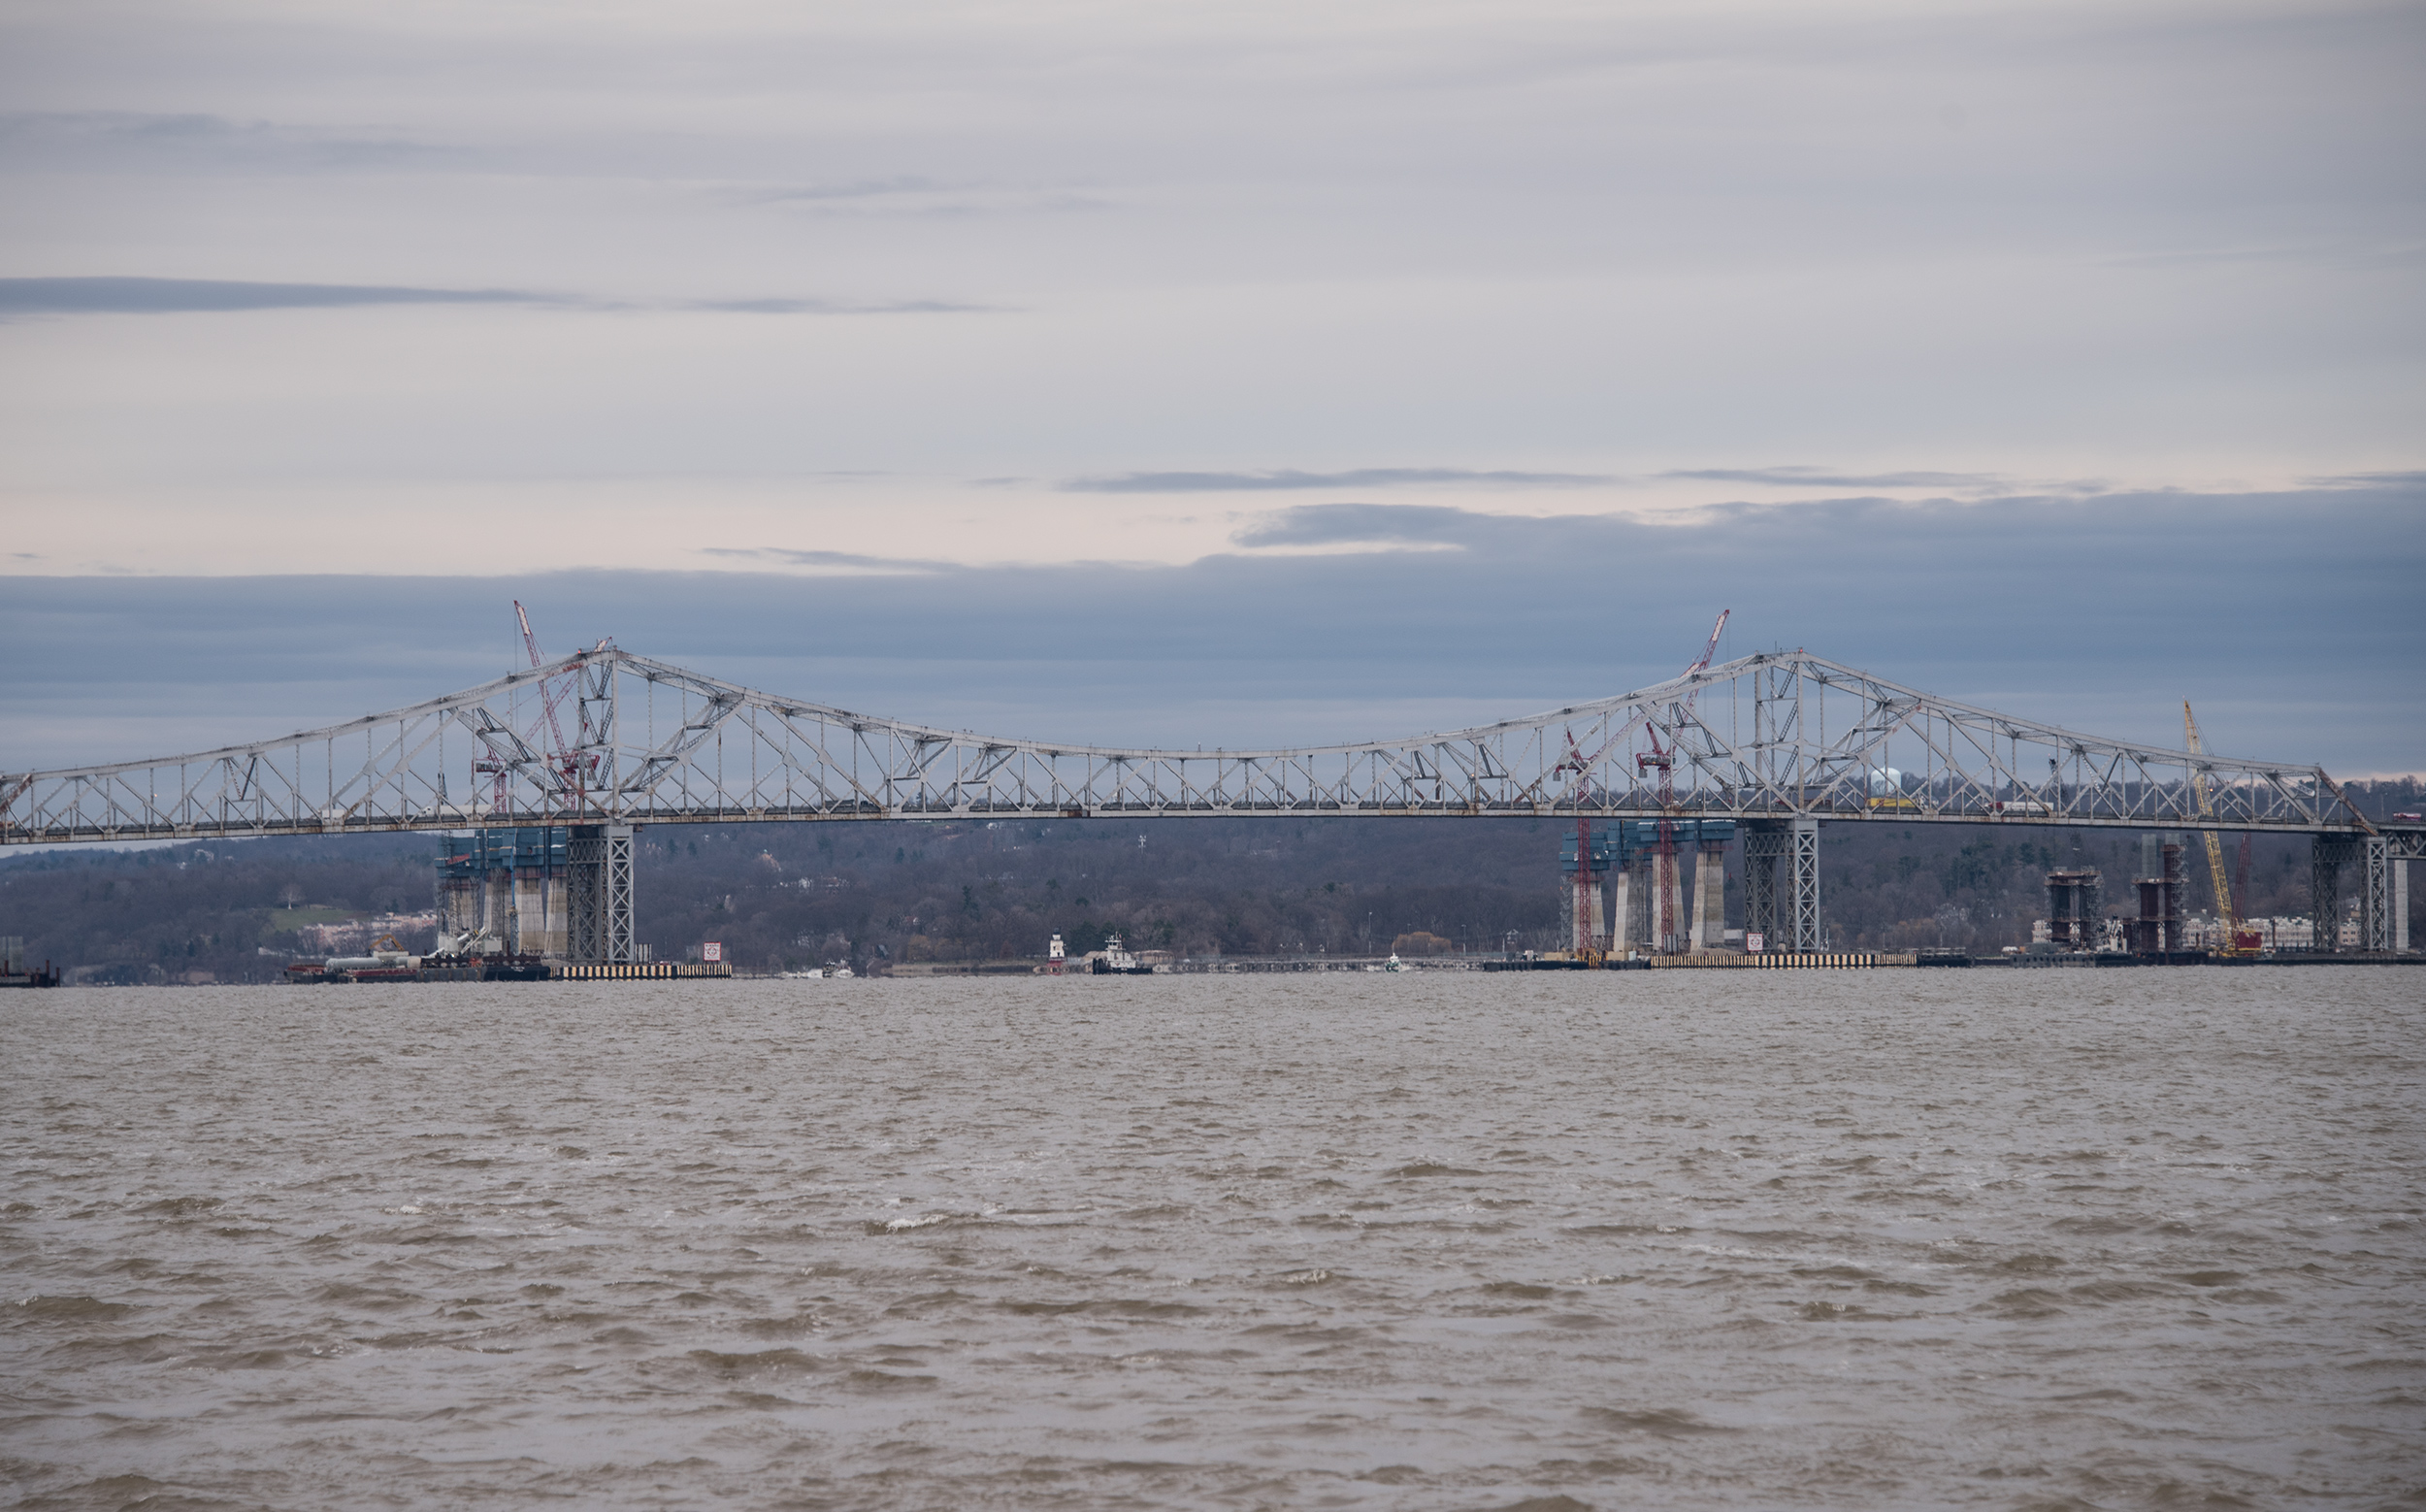 Tappan Zee Bridge, Piermont, NY, United States